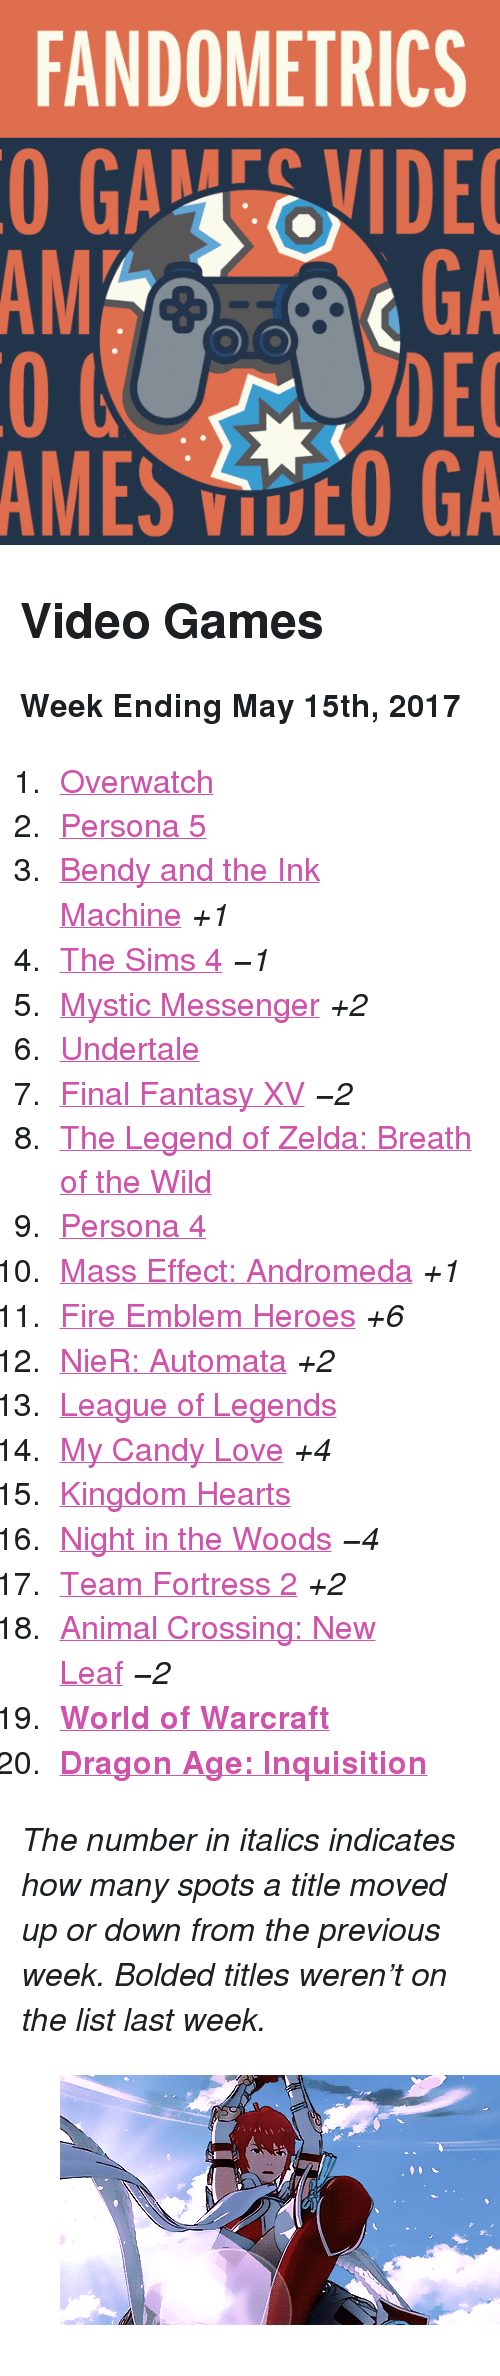 """Candy, Fire, and Gif: FANDOMETRICS  GAEVIDE  GA  DEC  AMES VOO GA  AM <h2>Video Games</h2><p><b>Week Ending May 15th, 2017</b></p><ol><li><a href=""""http://tumblr.co/613989vNZ"""">Overwatch</a></li><li><a href=""""http://tumblr.co/613089vNw%205"""">Persona 5</a></li><li><a href=""""http://tumblr.co/613189vNb"""">Bendy and the Ink Machine</a><i>+1</i></li><li><a href=""""http://tumblr.co/613289vNj"""">The Sims 4</a><i>−1</i></li><li><a href=""""http://tumblr.co/613389vNd"""">Mystic Messenger</a><i>+2</i></li><li><a href=""""http://tumblr.co/613489vNe"""">Undertale</a></li><li><a href=""""http://tumblr.co/613589vN5"""">Final Fantasy XV</a><i>−2</i></li><li><a href=""""http://tumblr.co/613689vNg"""">The Legend of Zelda: Breath of the Wild</a></li><li><a href=""""http://tumblr.co/613789vN9"""">Persona 4</a></li><li><a href=""""http://tumblr.co/613889vNi"""">Mass Effect: Andromeda</a><i>+1</i></li><li><a href=""""http://tumblr.co/613989vNc"""">Fire Emblem Heroes</a><i>+6</i></li><li><a href=""""http://tumblr.co/613089vNY"""">NieR: Automata</a><i>+2</i></li><li><a href=""""http://tumblr.co/613189vNl"""">League of Legends</a></li><li><a href=""""http://tumblr.co/613289vNm"""">My Candy Love</a><i>+4</i></li><li><a href=""""http://tumblr.co/613389vNW"""">Kingdom Hearts</a></li><li><a href=""""http://tumblr.co/613489vNo"""">Night in the Woods</a><i>−4</i></li><li><a href=""""http://tumblr.co/613589vNU"""">Team Fortress 2</a><i>+2</i></li><li><a href=""""http://tumblr.co/613689vNq"""">Animal Crossing: New Leaf</a><i>−2</i></li><li><a href=""""http://tumblr.co/613789vNS""""><b>World of Warcraft</b></a></li><li><a href=""""http://tumblr.co/613889vNs""""><b>Dragon Age: Inquisition</b></a></li></ol><p><i>The number in italics indicates how many spots a title moved up or down from the previous week. Bolded titles weren't on the list last week.</i></p><figure data-orig-width=""""500"""" data-orig-height=""""279"""" data-tumblr-attribution=""""bestgirloftheday:5pc-SrWR0wScW_froCaXnw:ZhdOzh2JcL2_0"""" class=""""tmblr-full""""><img src=""""https://78.media.tumblr.com/431f7bebd7dda2b67b5d6860c979b965/tumblr_olxypwzI5s1v89ei5o1_50"""